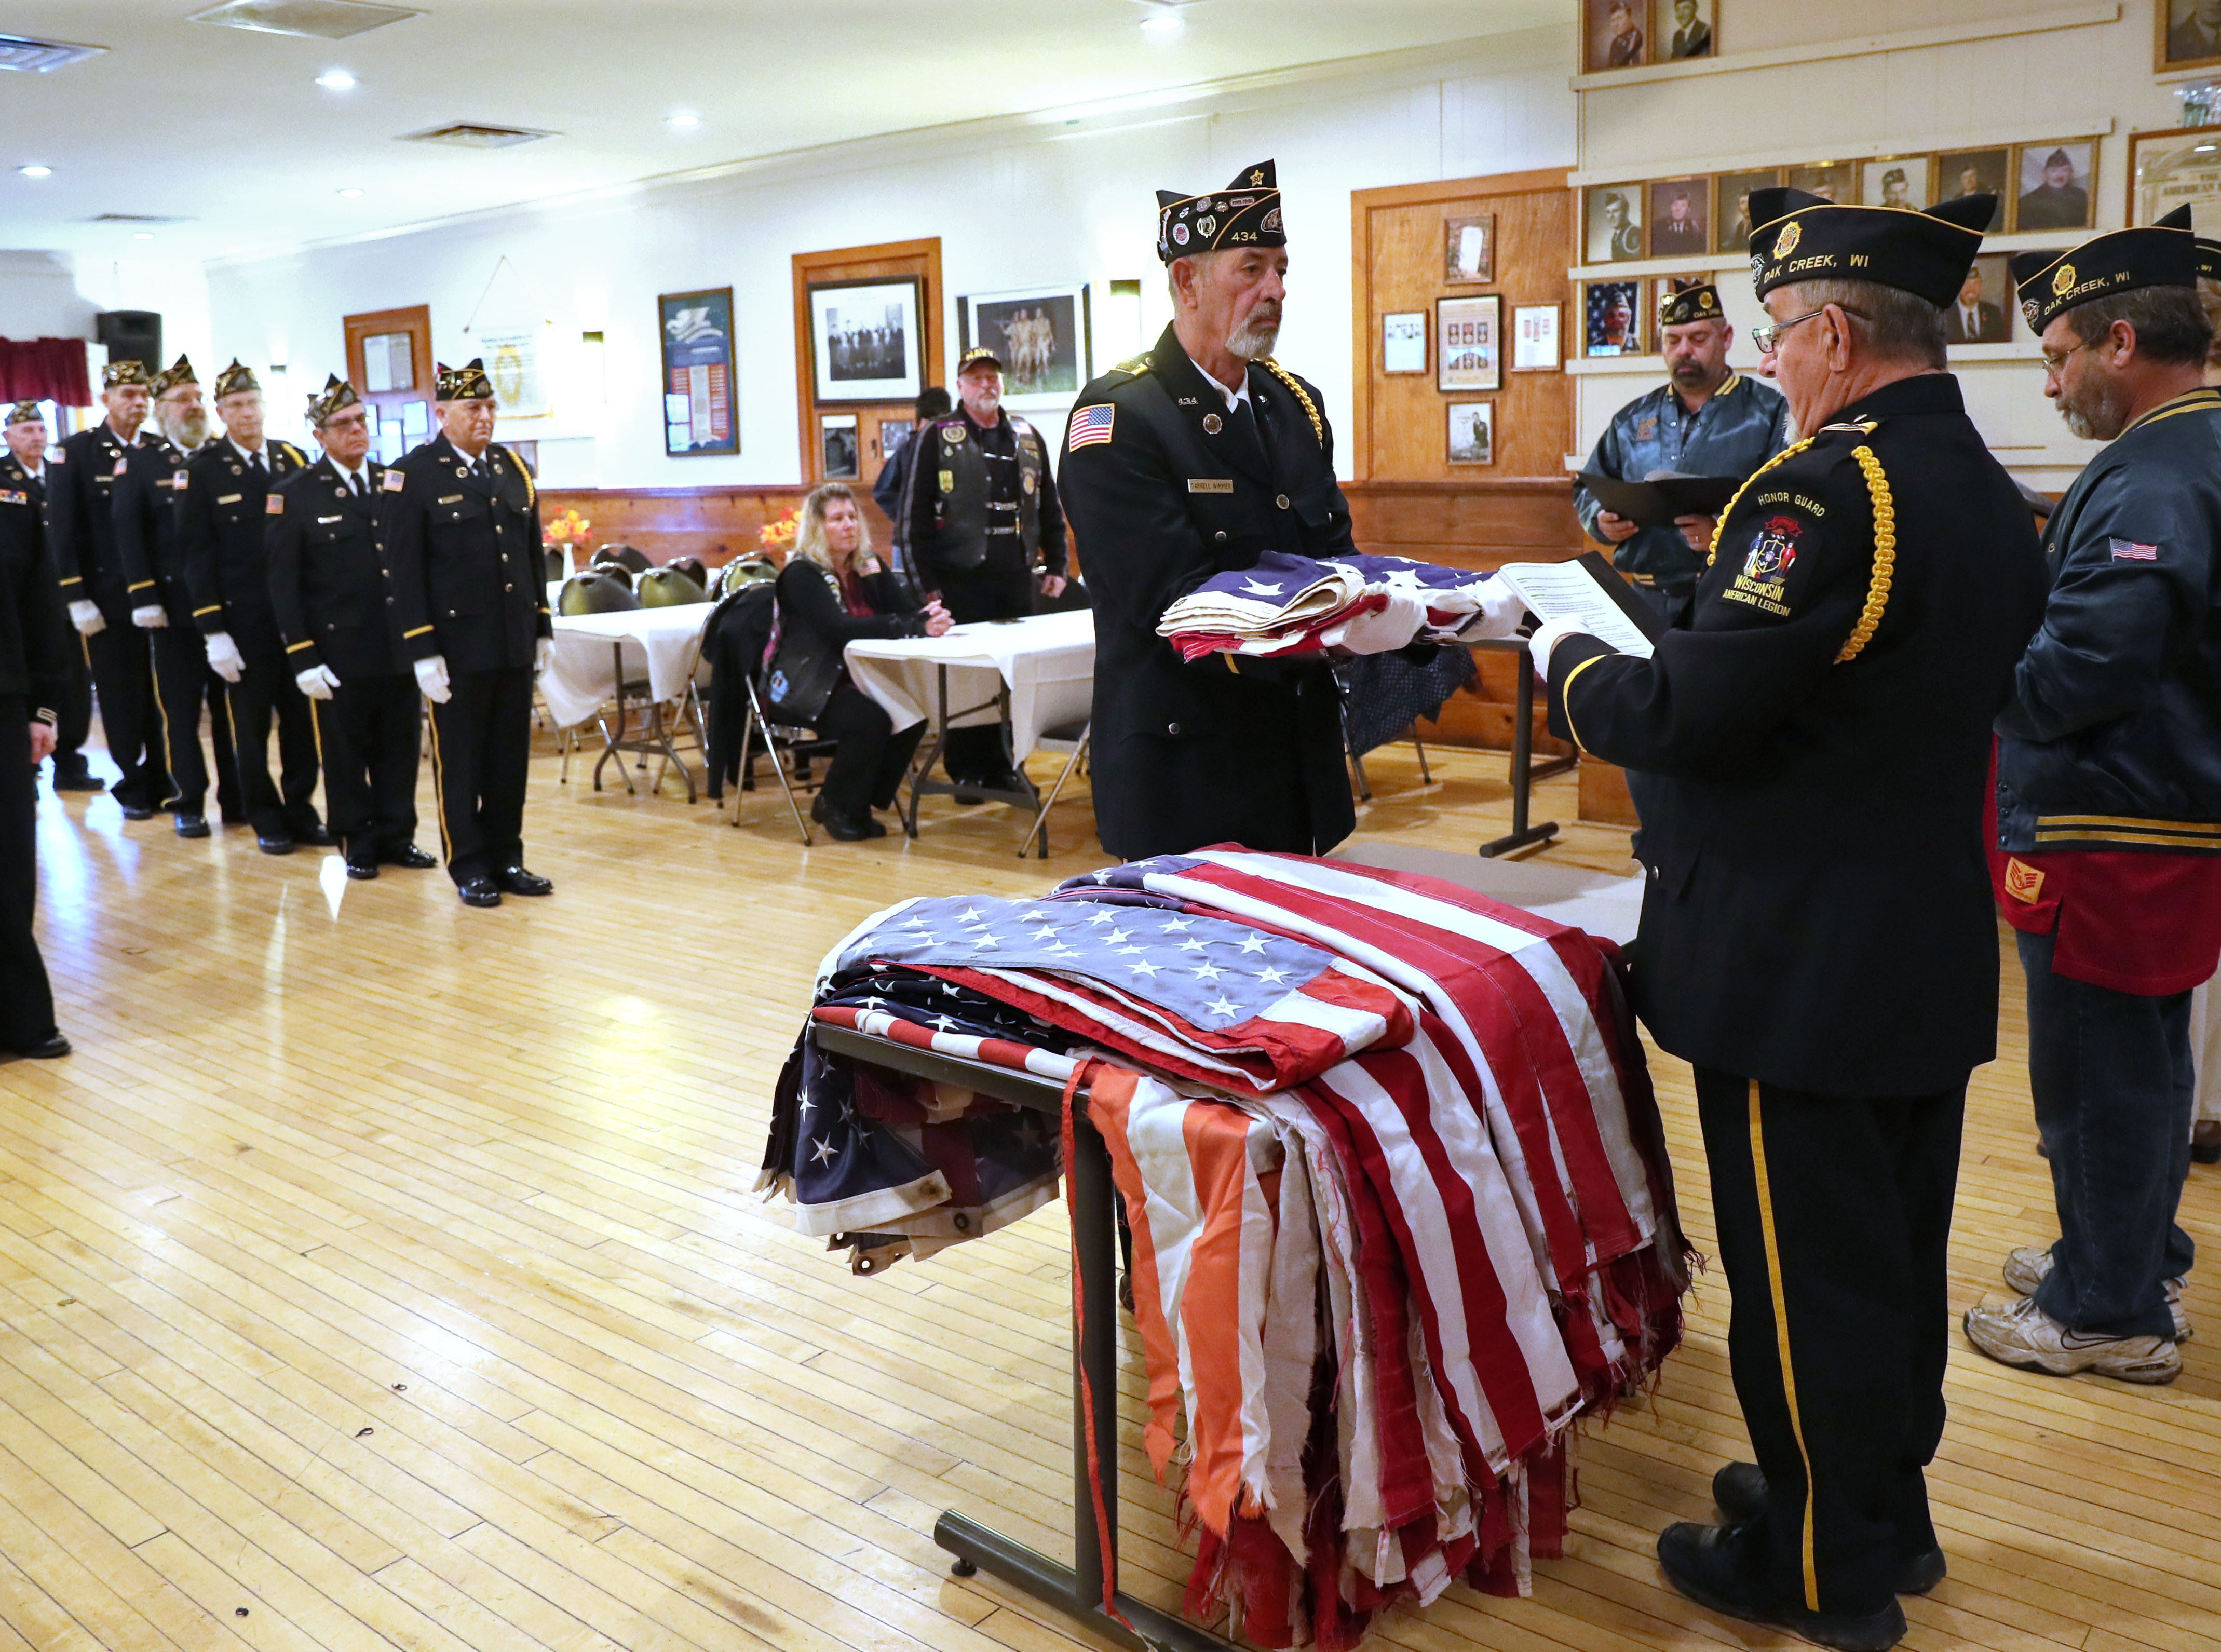 Darrell Wimmer, a member of the honor guard, holds a flag as George Rainer (right), the honor guard commander, starts the ceremony to retire the flags.  Members of the post and a unit of United States Naval Sea Cadets (a high school and middle school program) are in the background.